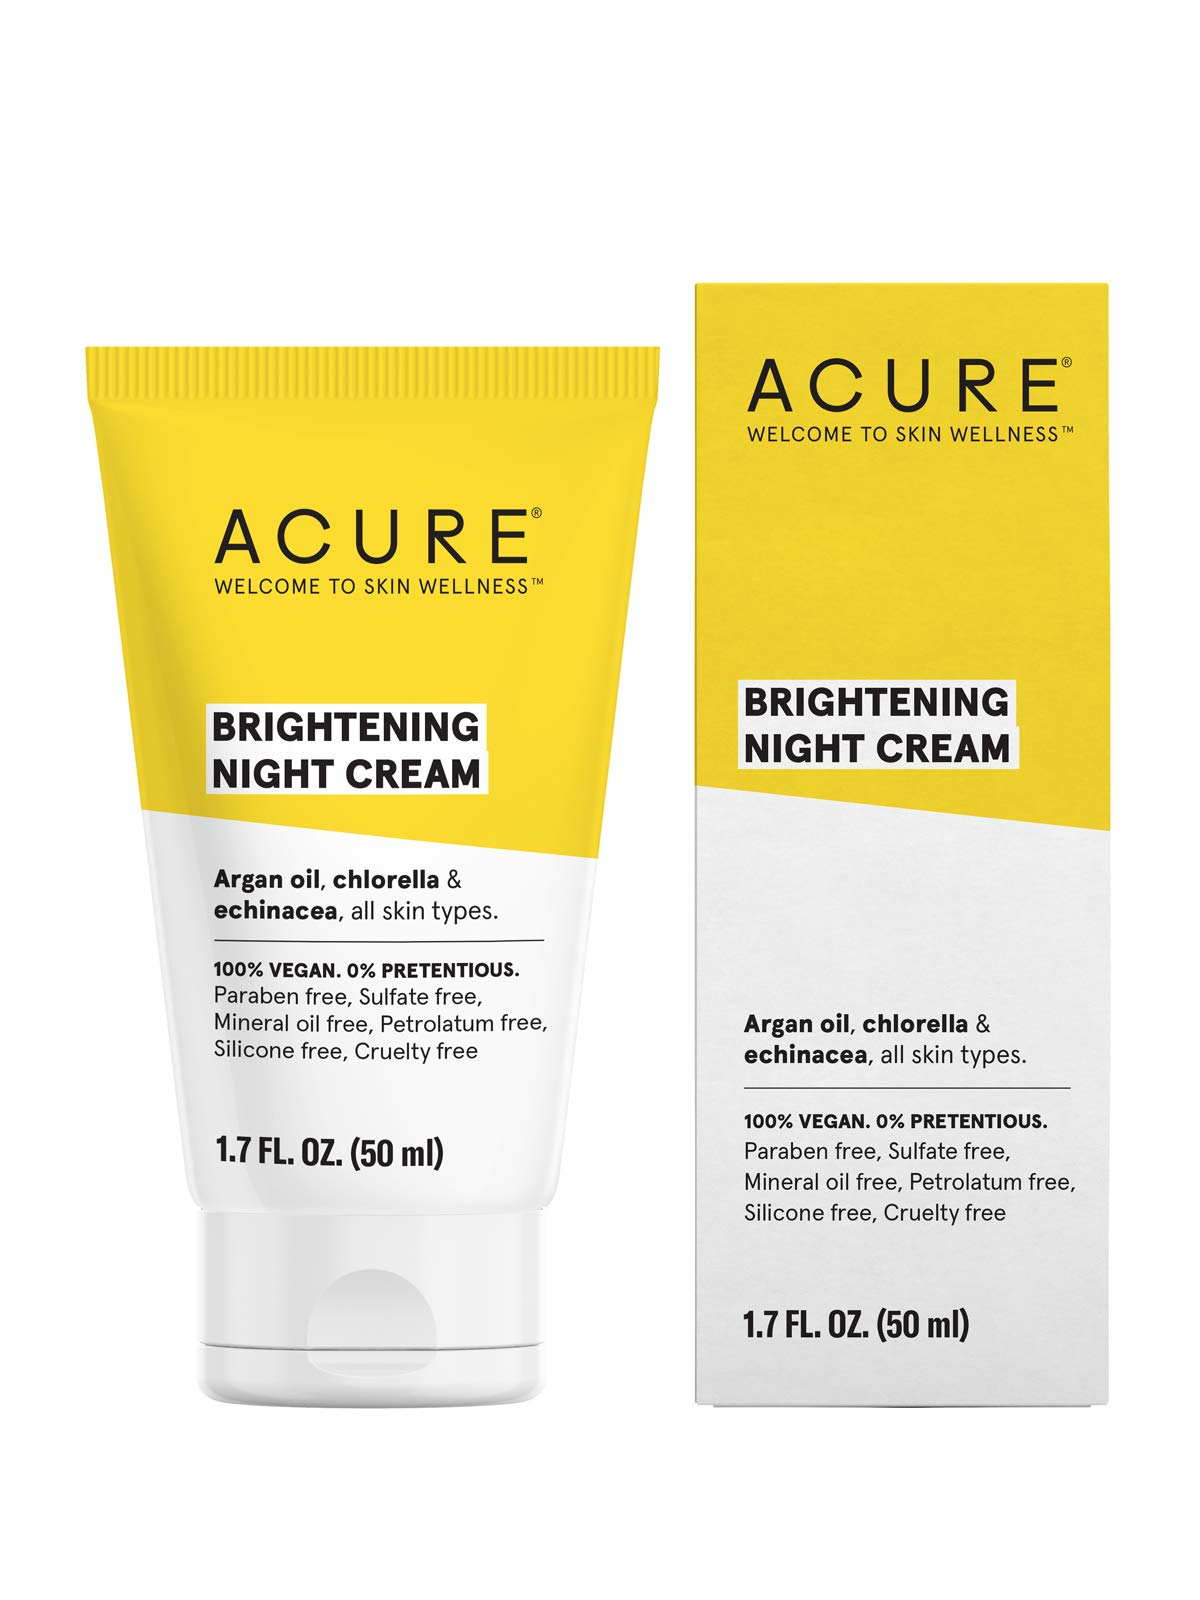 ACURE Brightening Night Cream | 100% Vegan | For A Brighter Appearance | Argan Oil, Chlorella & Echinacea - Moisturizes, Protects & Hydrates | All Skin Types  | 1.4 Fl Oz by Acure